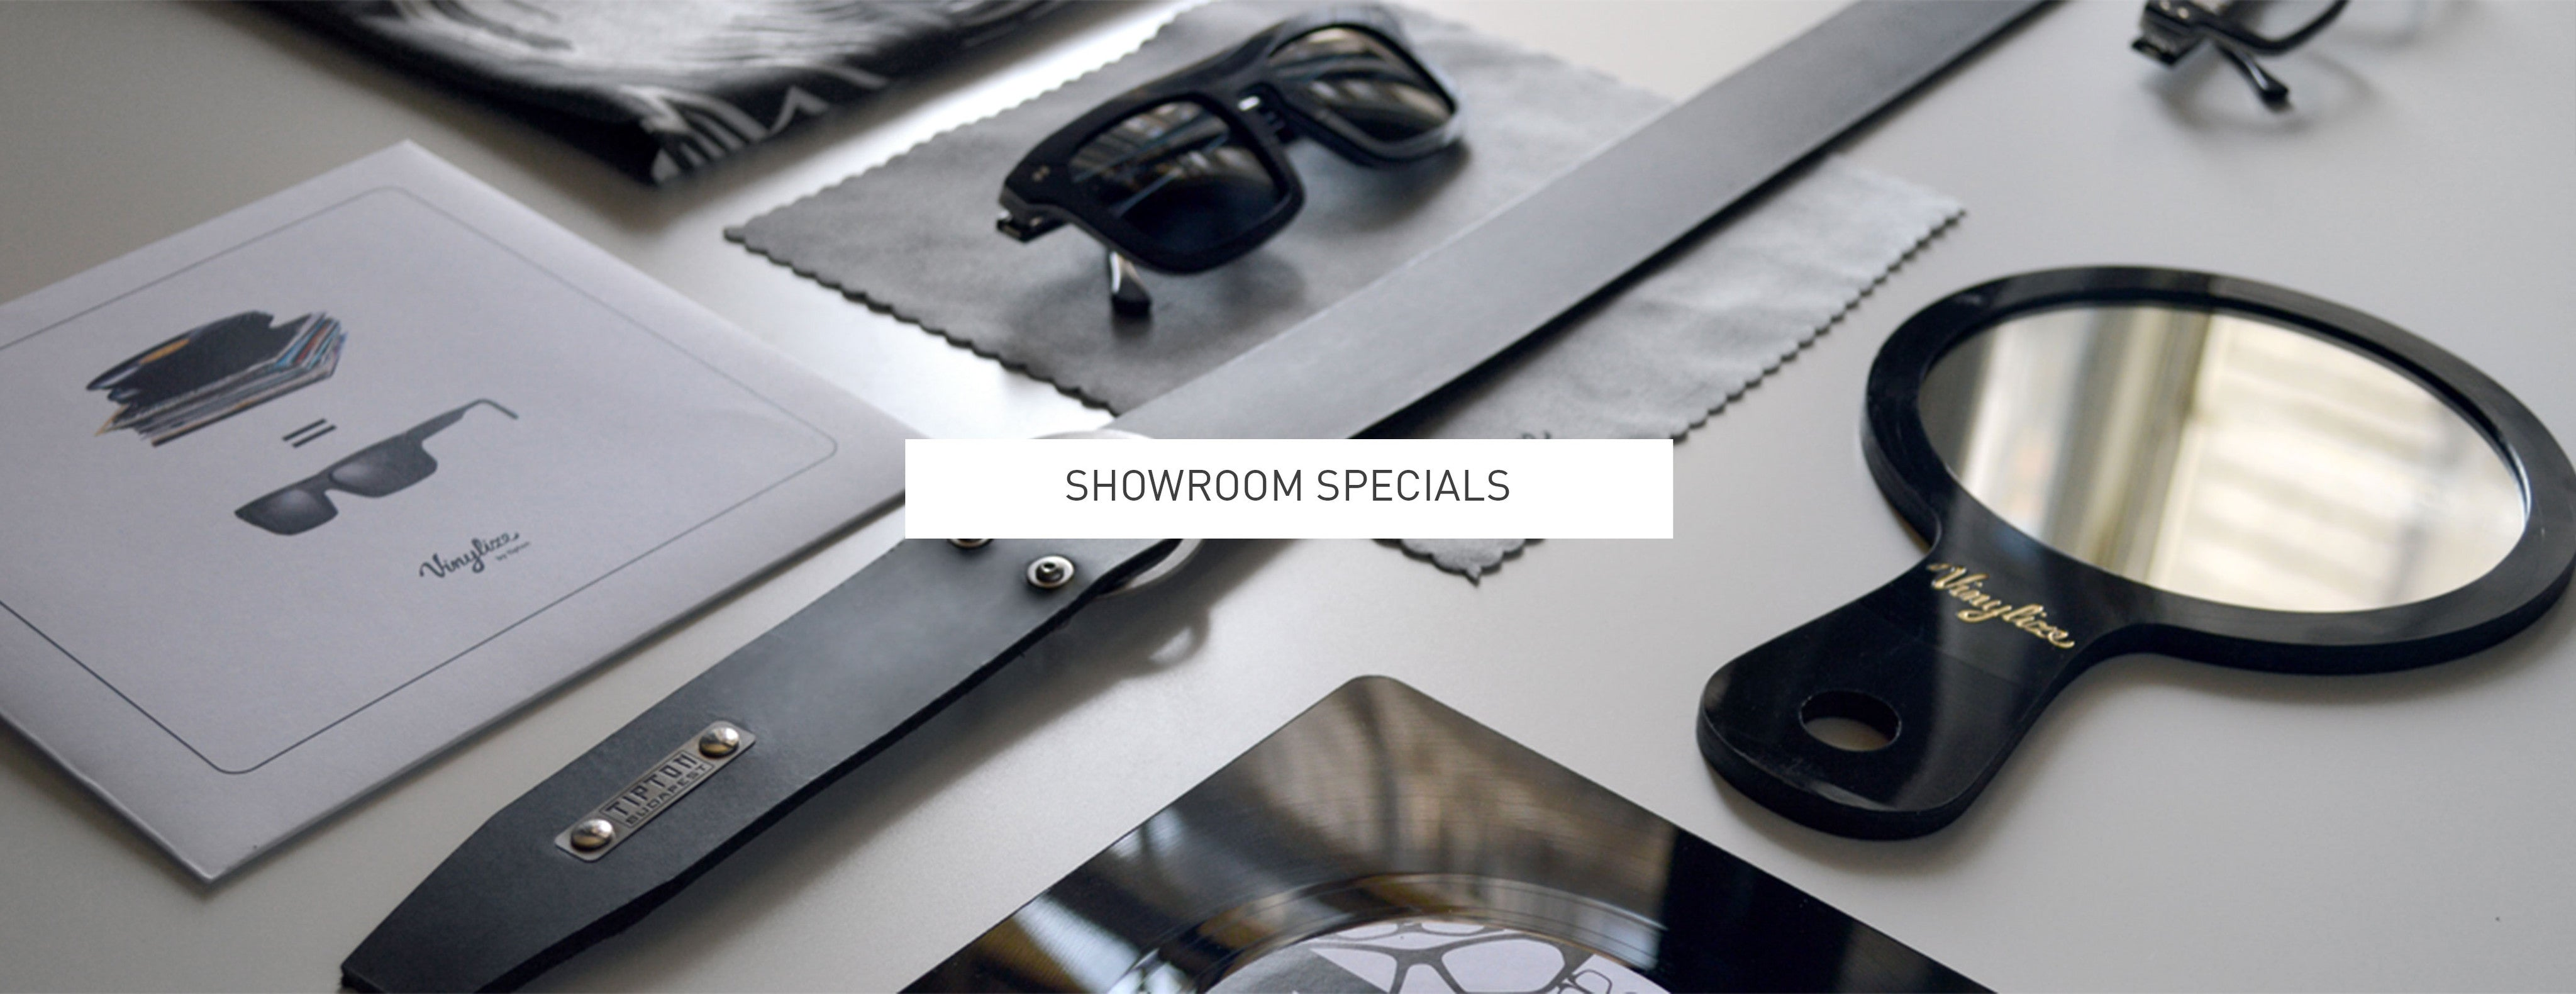 Showroom special